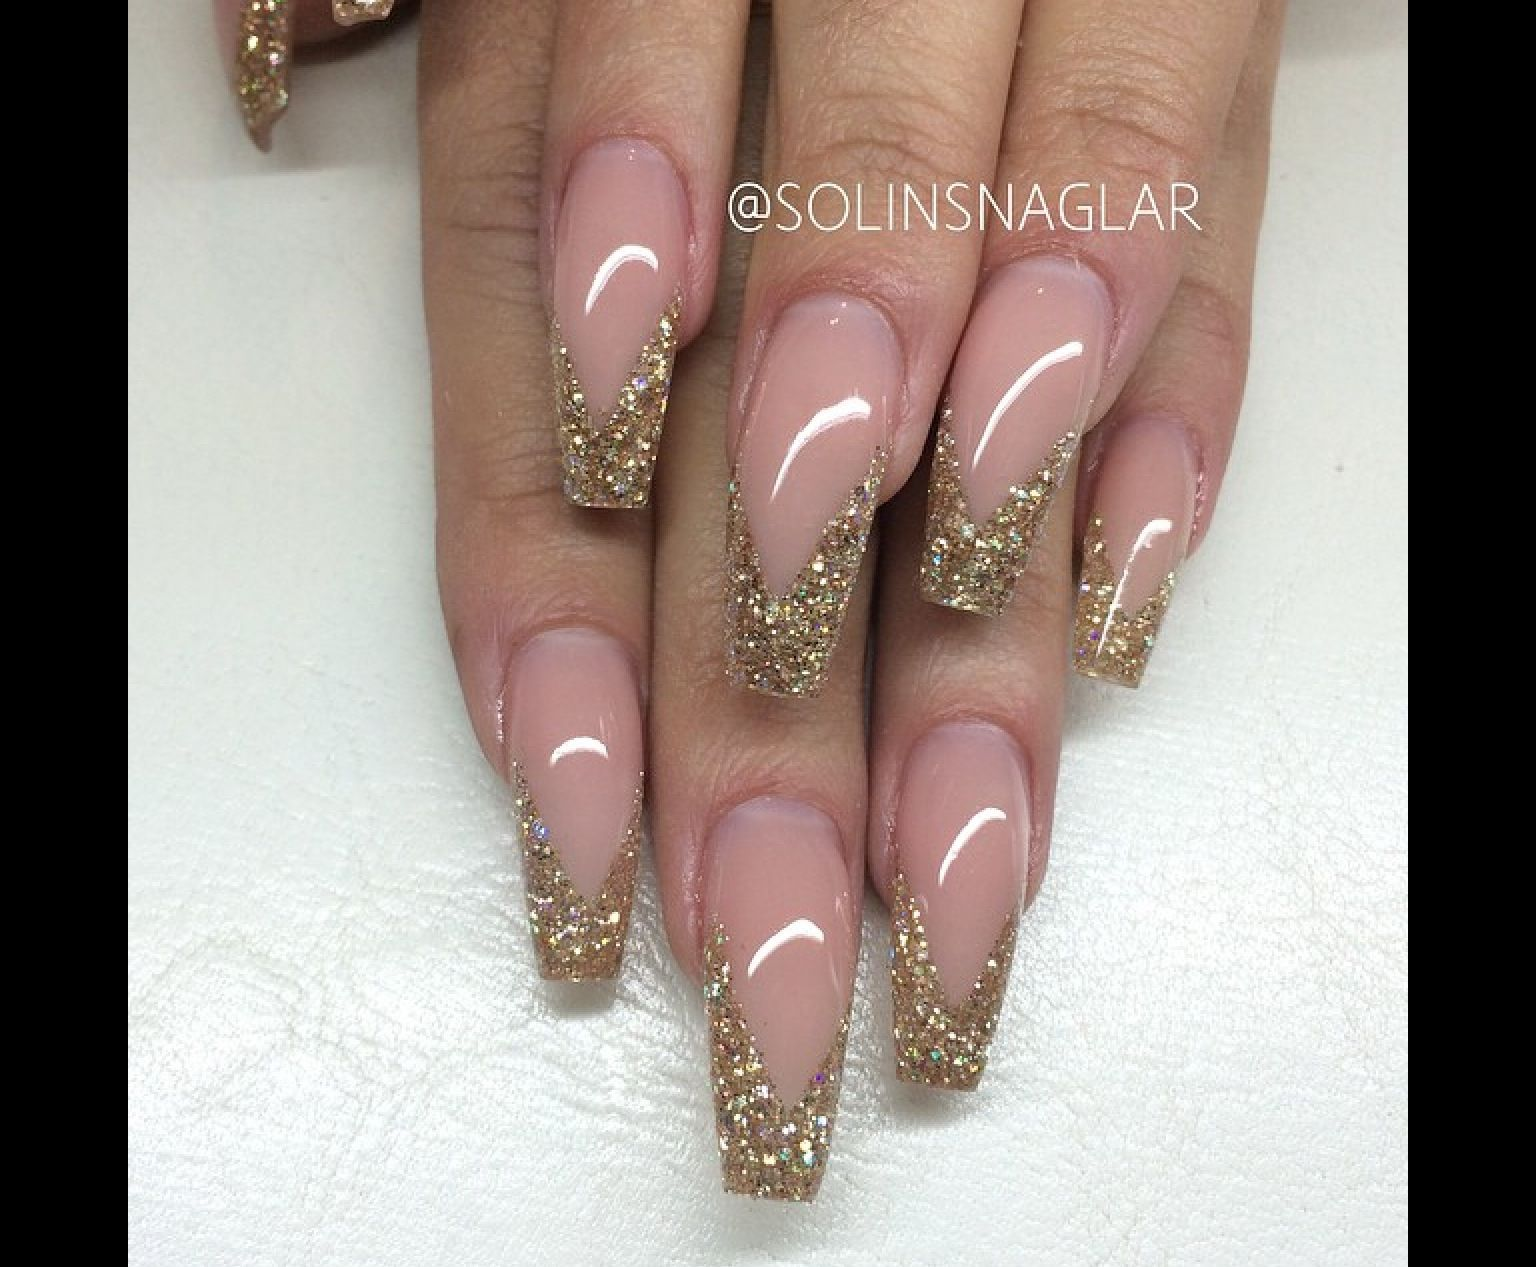 Pin by lenelca on nails | Pinterest | Nail nail